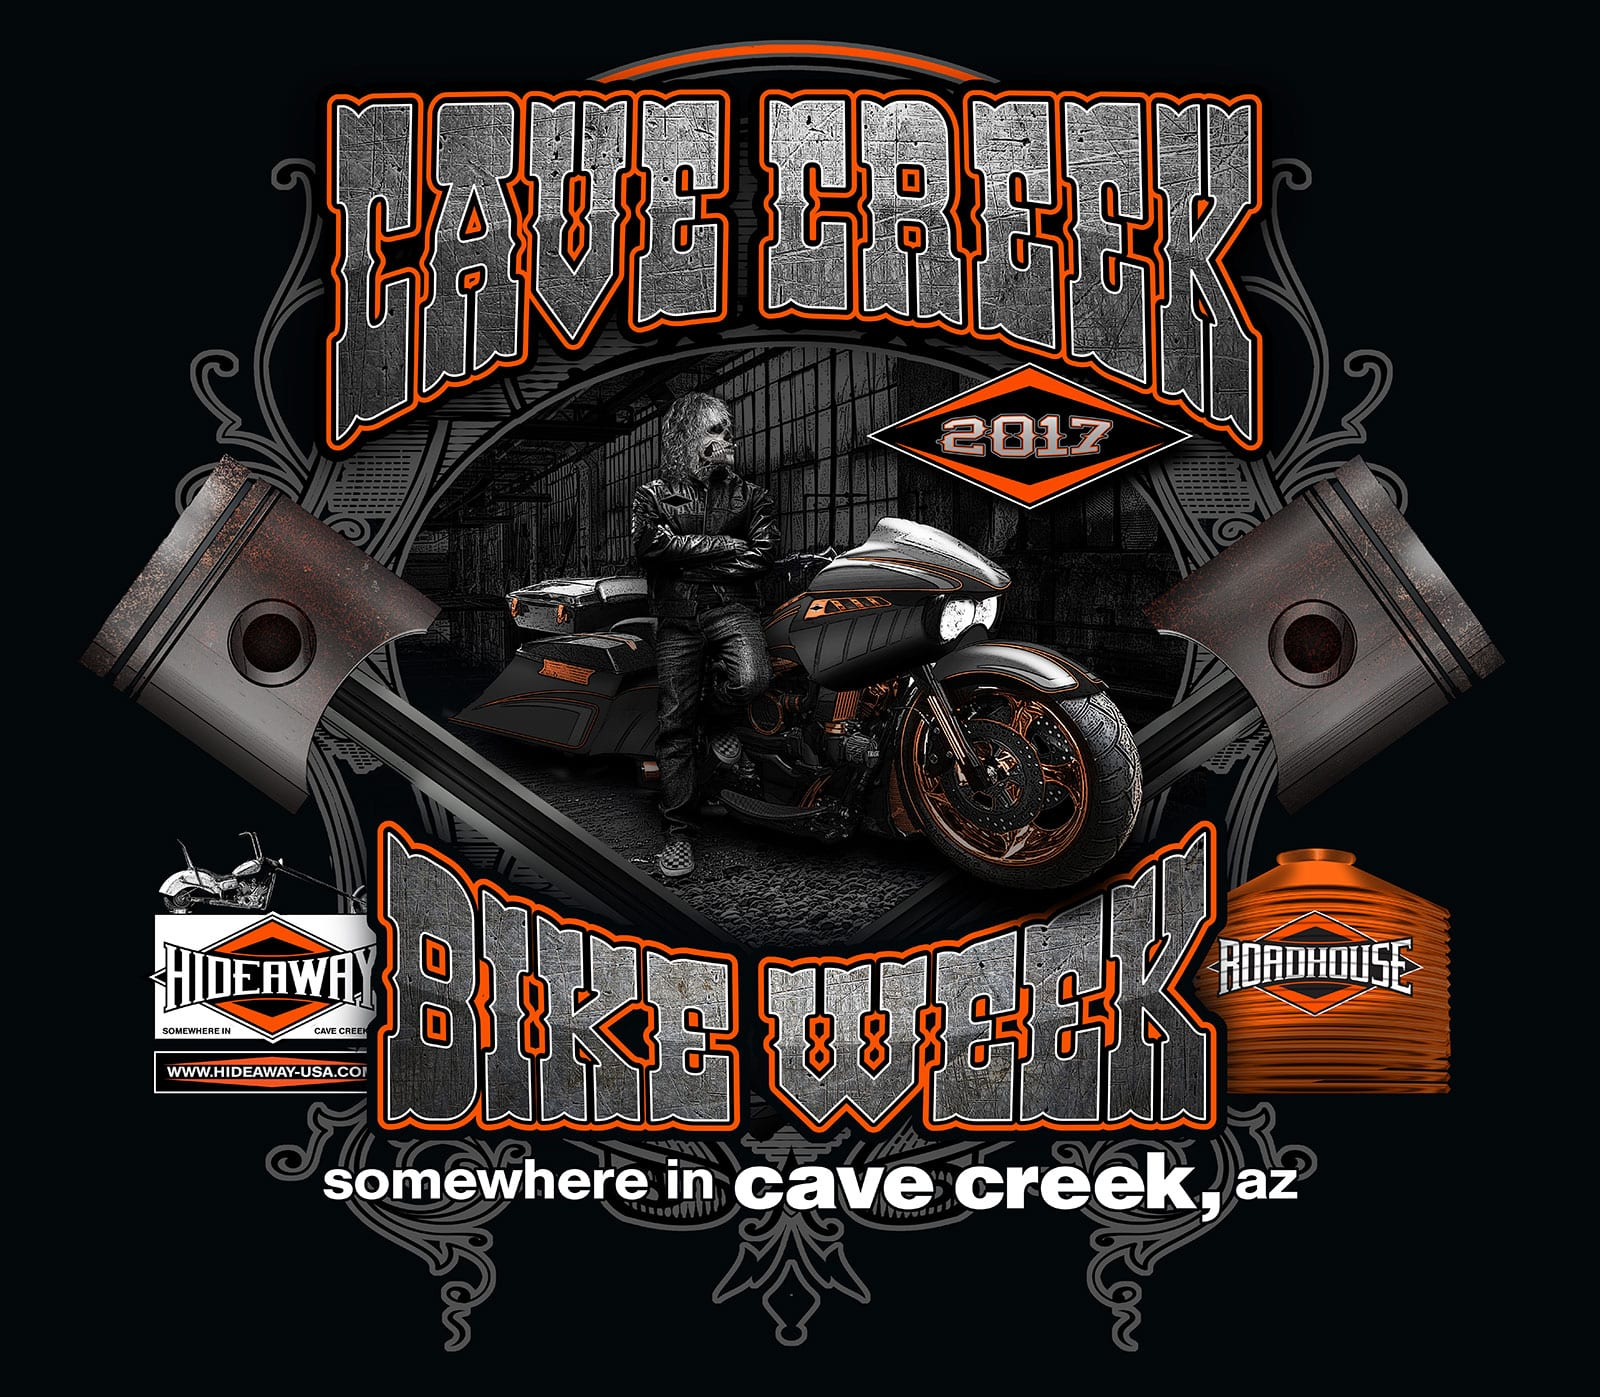 2017 Cave Creek Arizona Bike Week at the Hideaway Grill and Roadhouse.